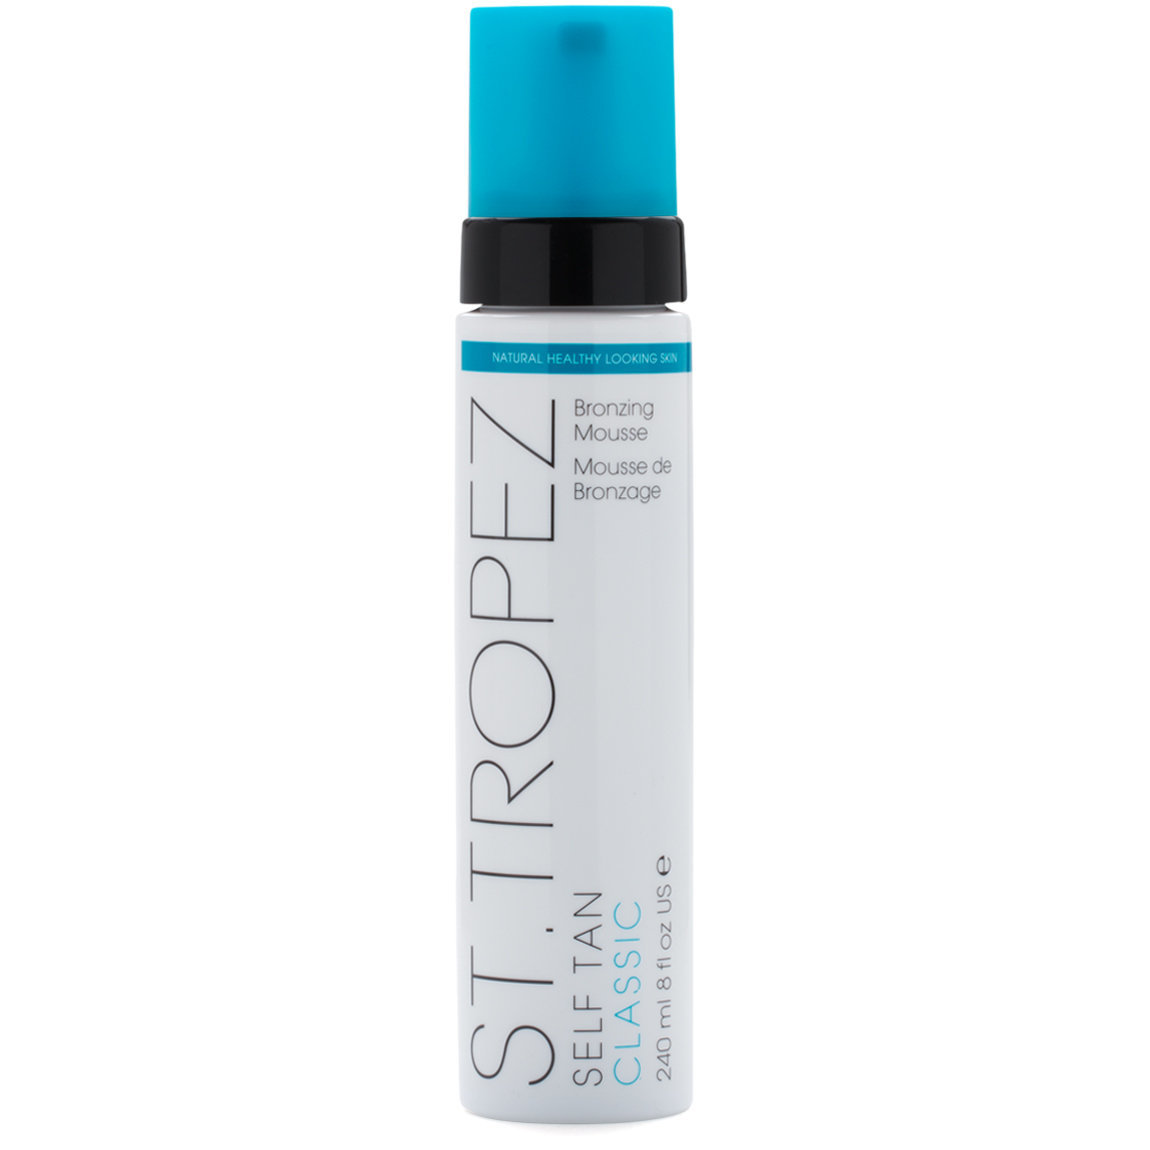 St. Tropez Self Tan Classic Bronzing Mousse 240 ml product swatch.